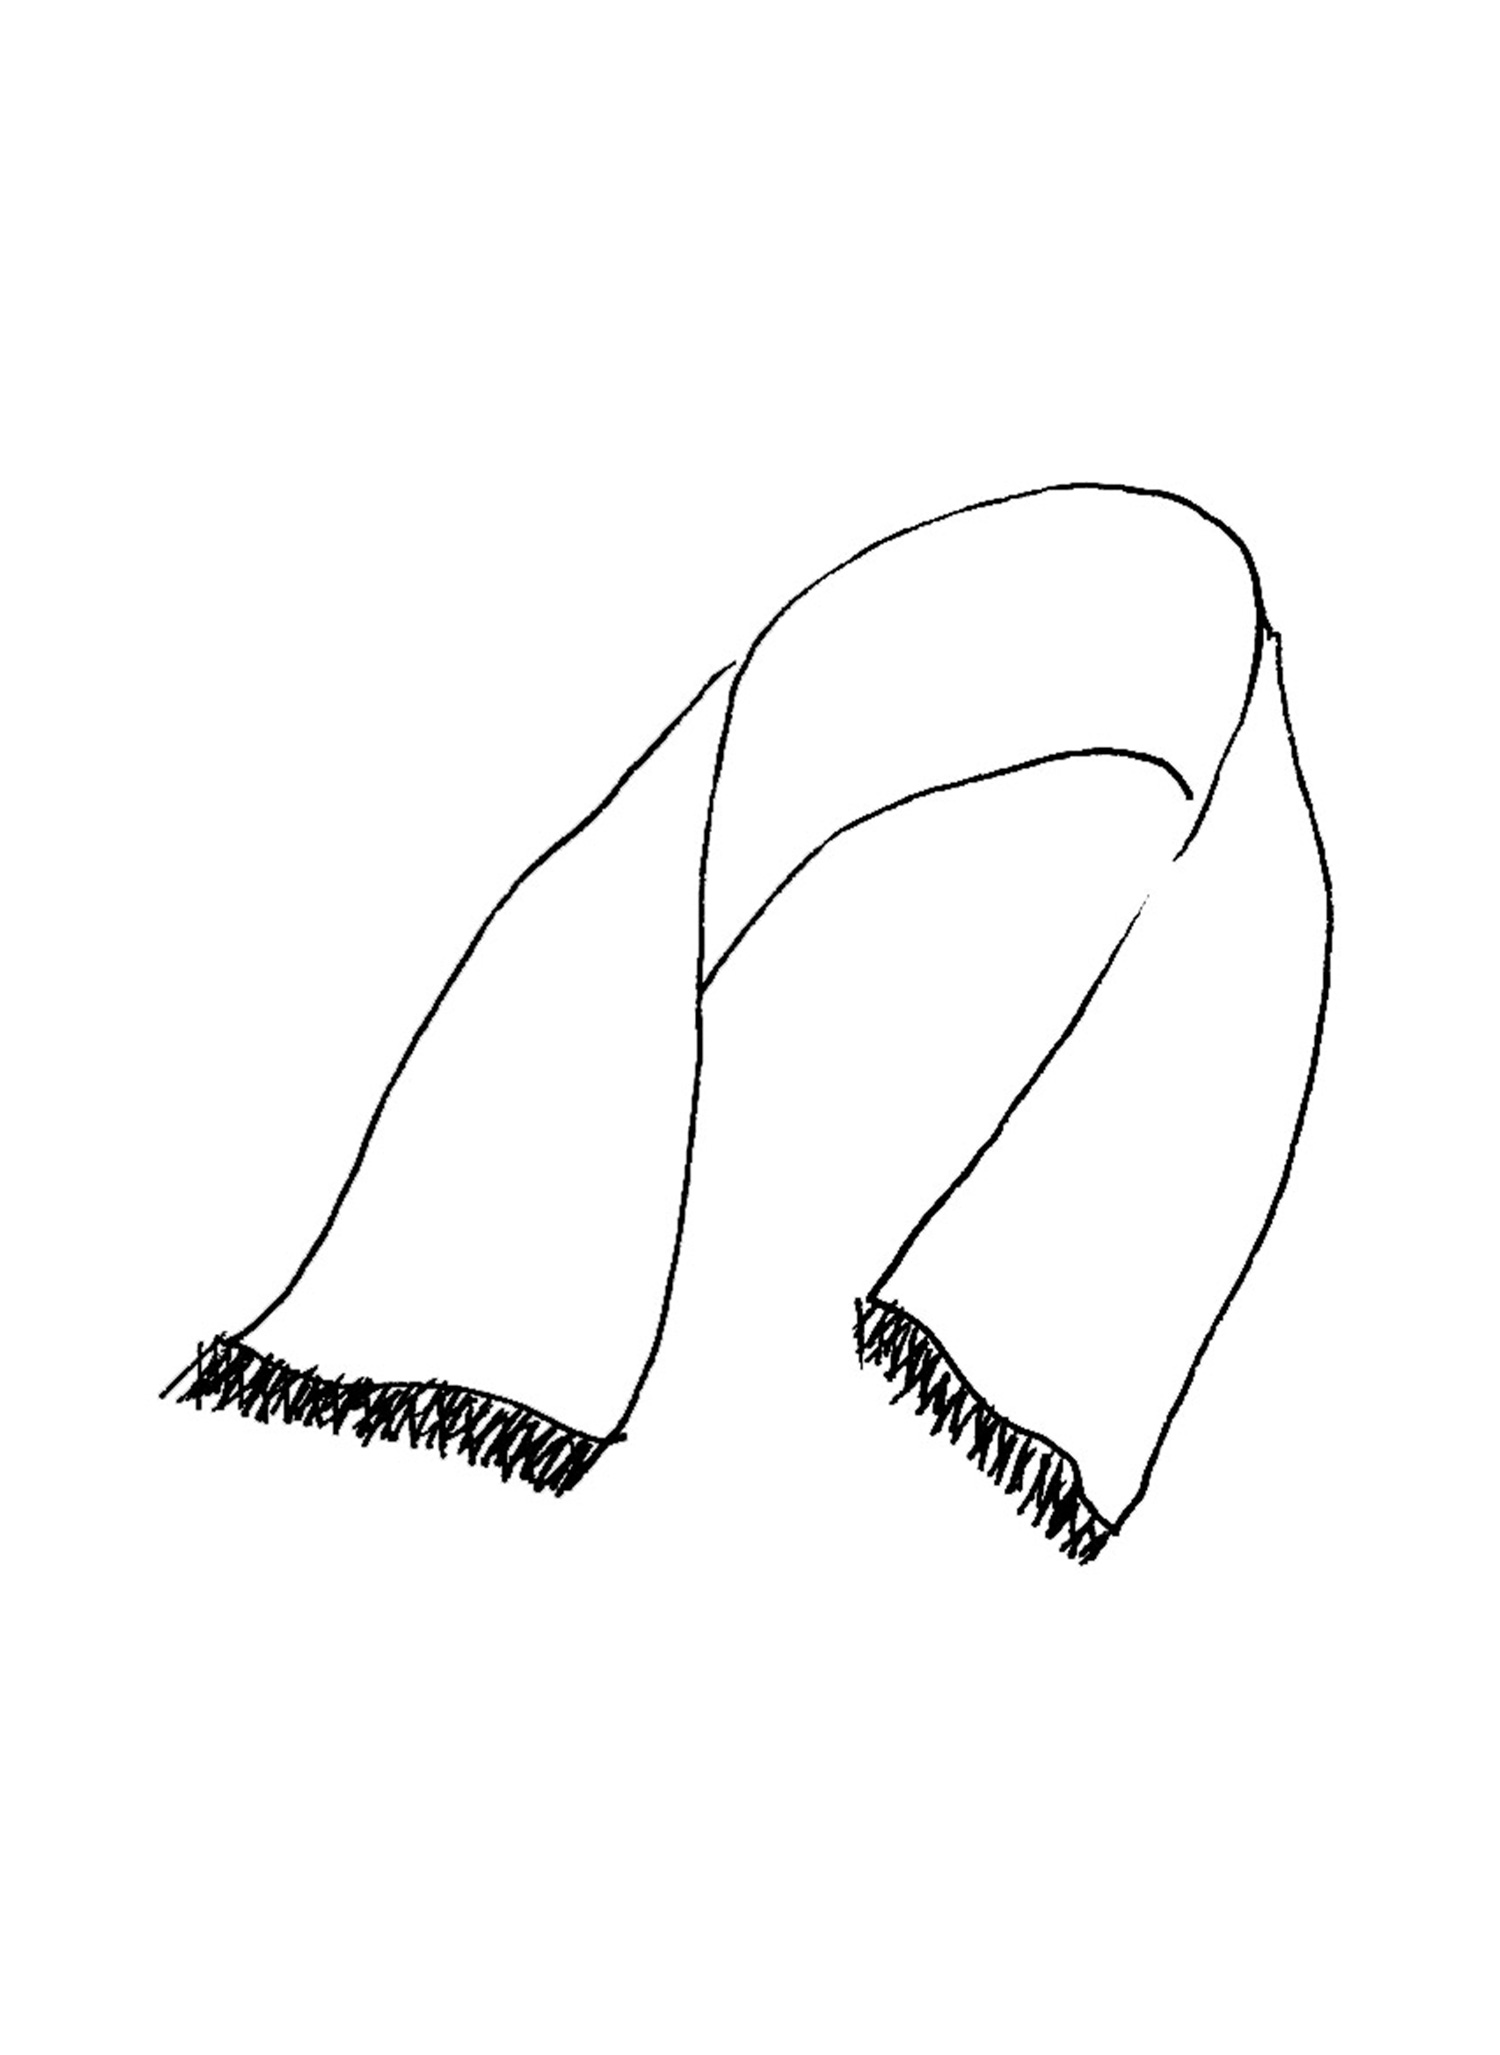 Scarf sketch image